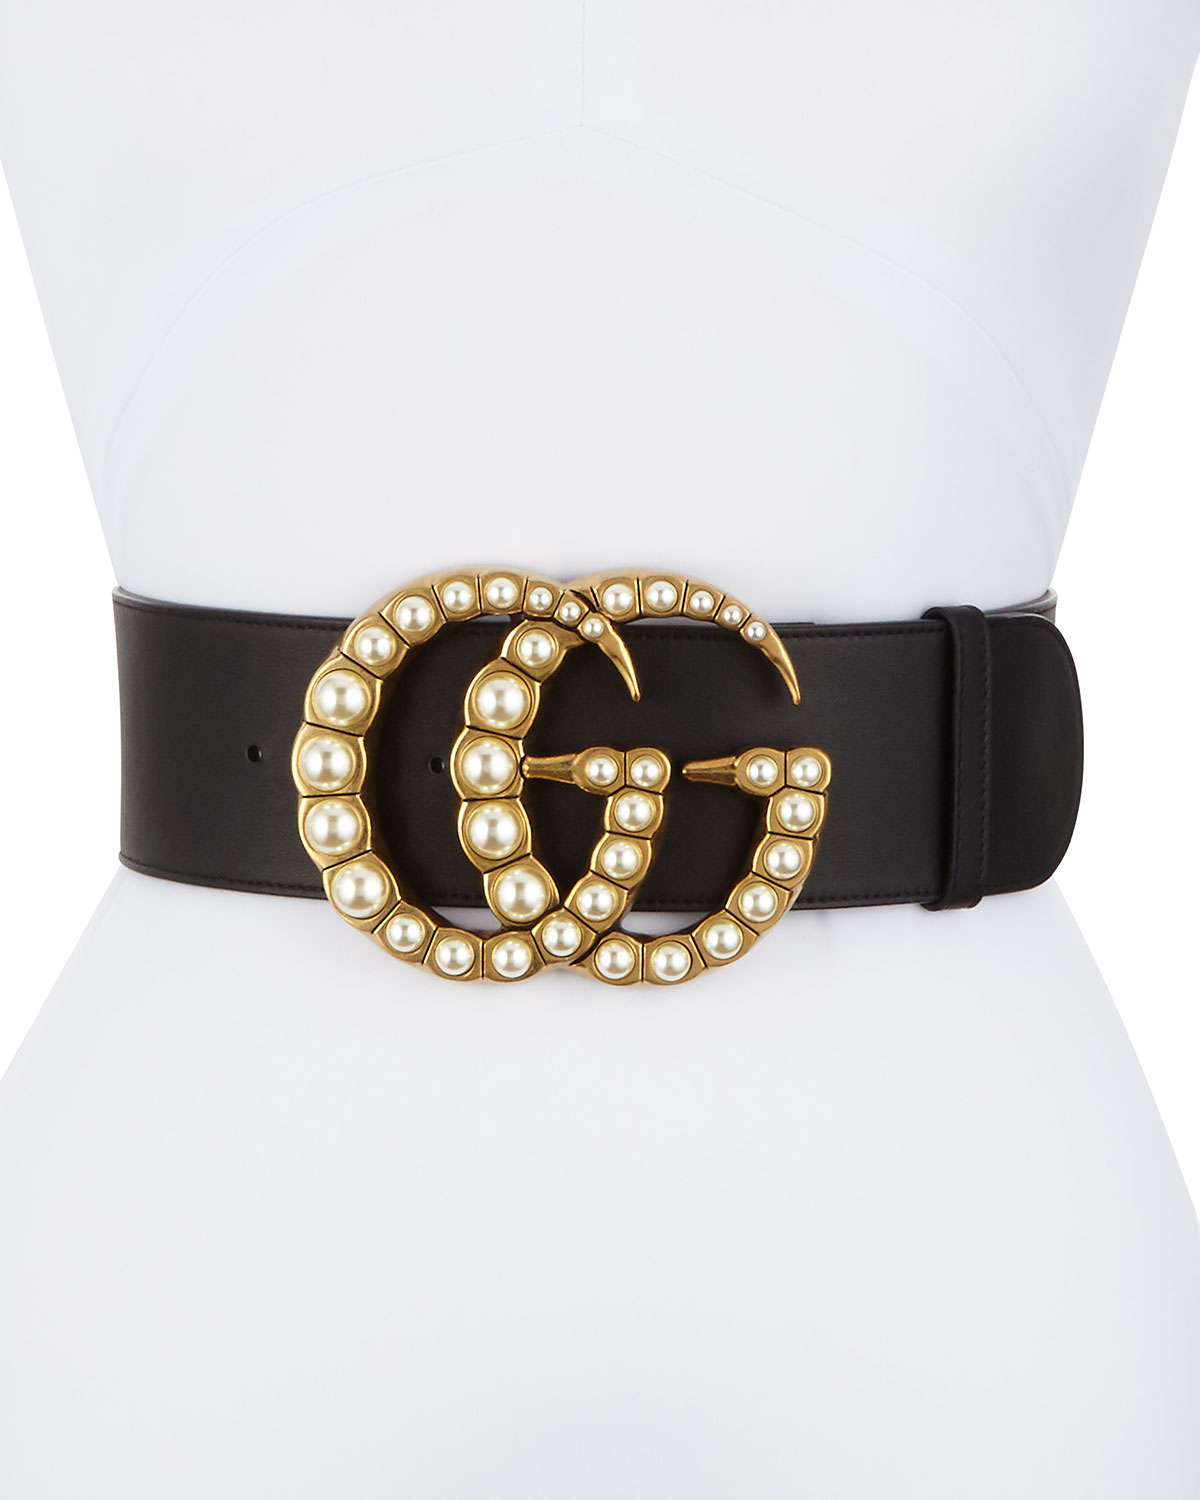 29b59bbcfb1 Gucci Wide Leather Belt w  Pearlescent Beads